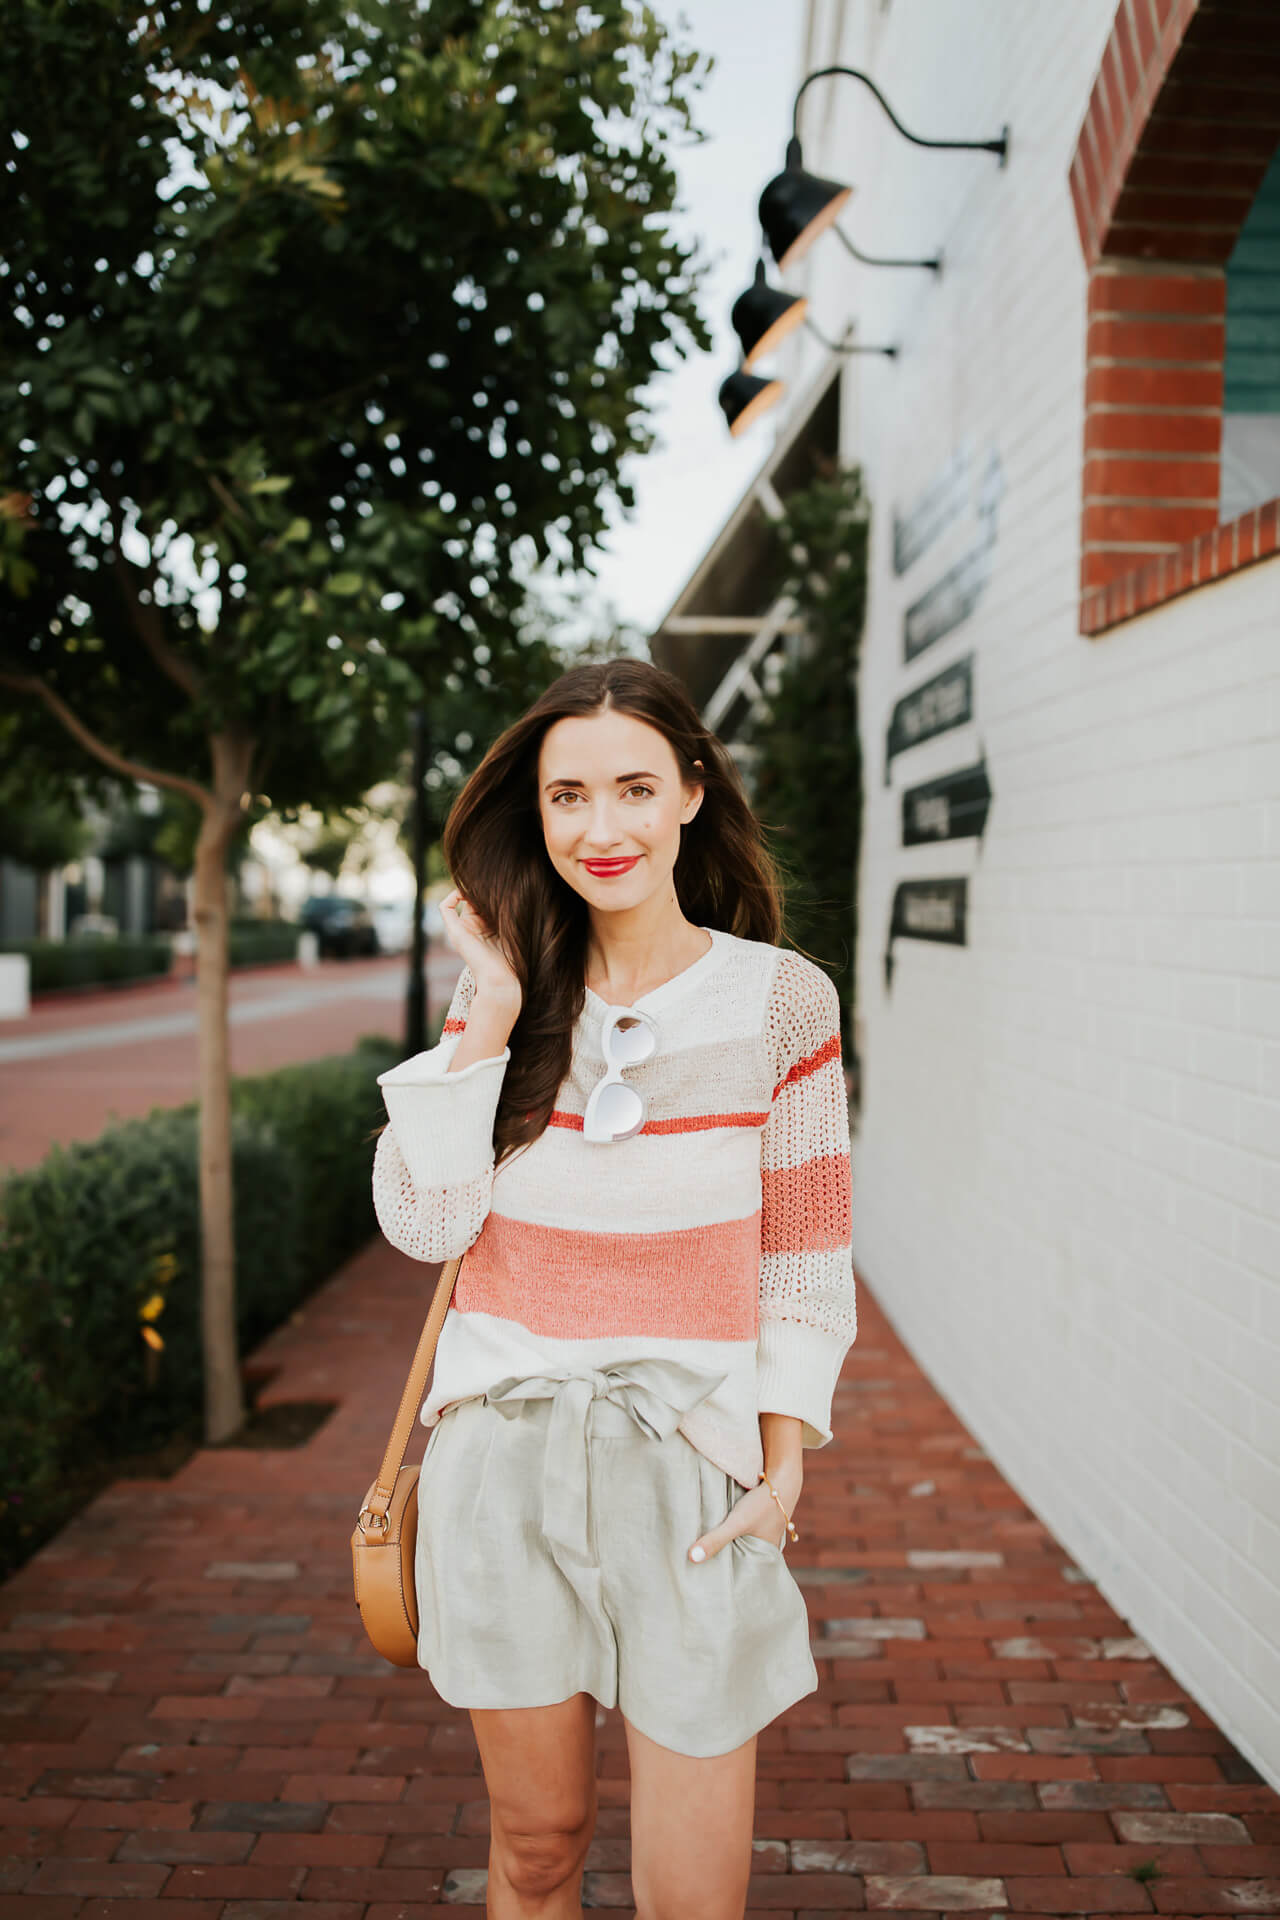 styling a pair of shorts with a sweater for spring - M Loves M @marmar